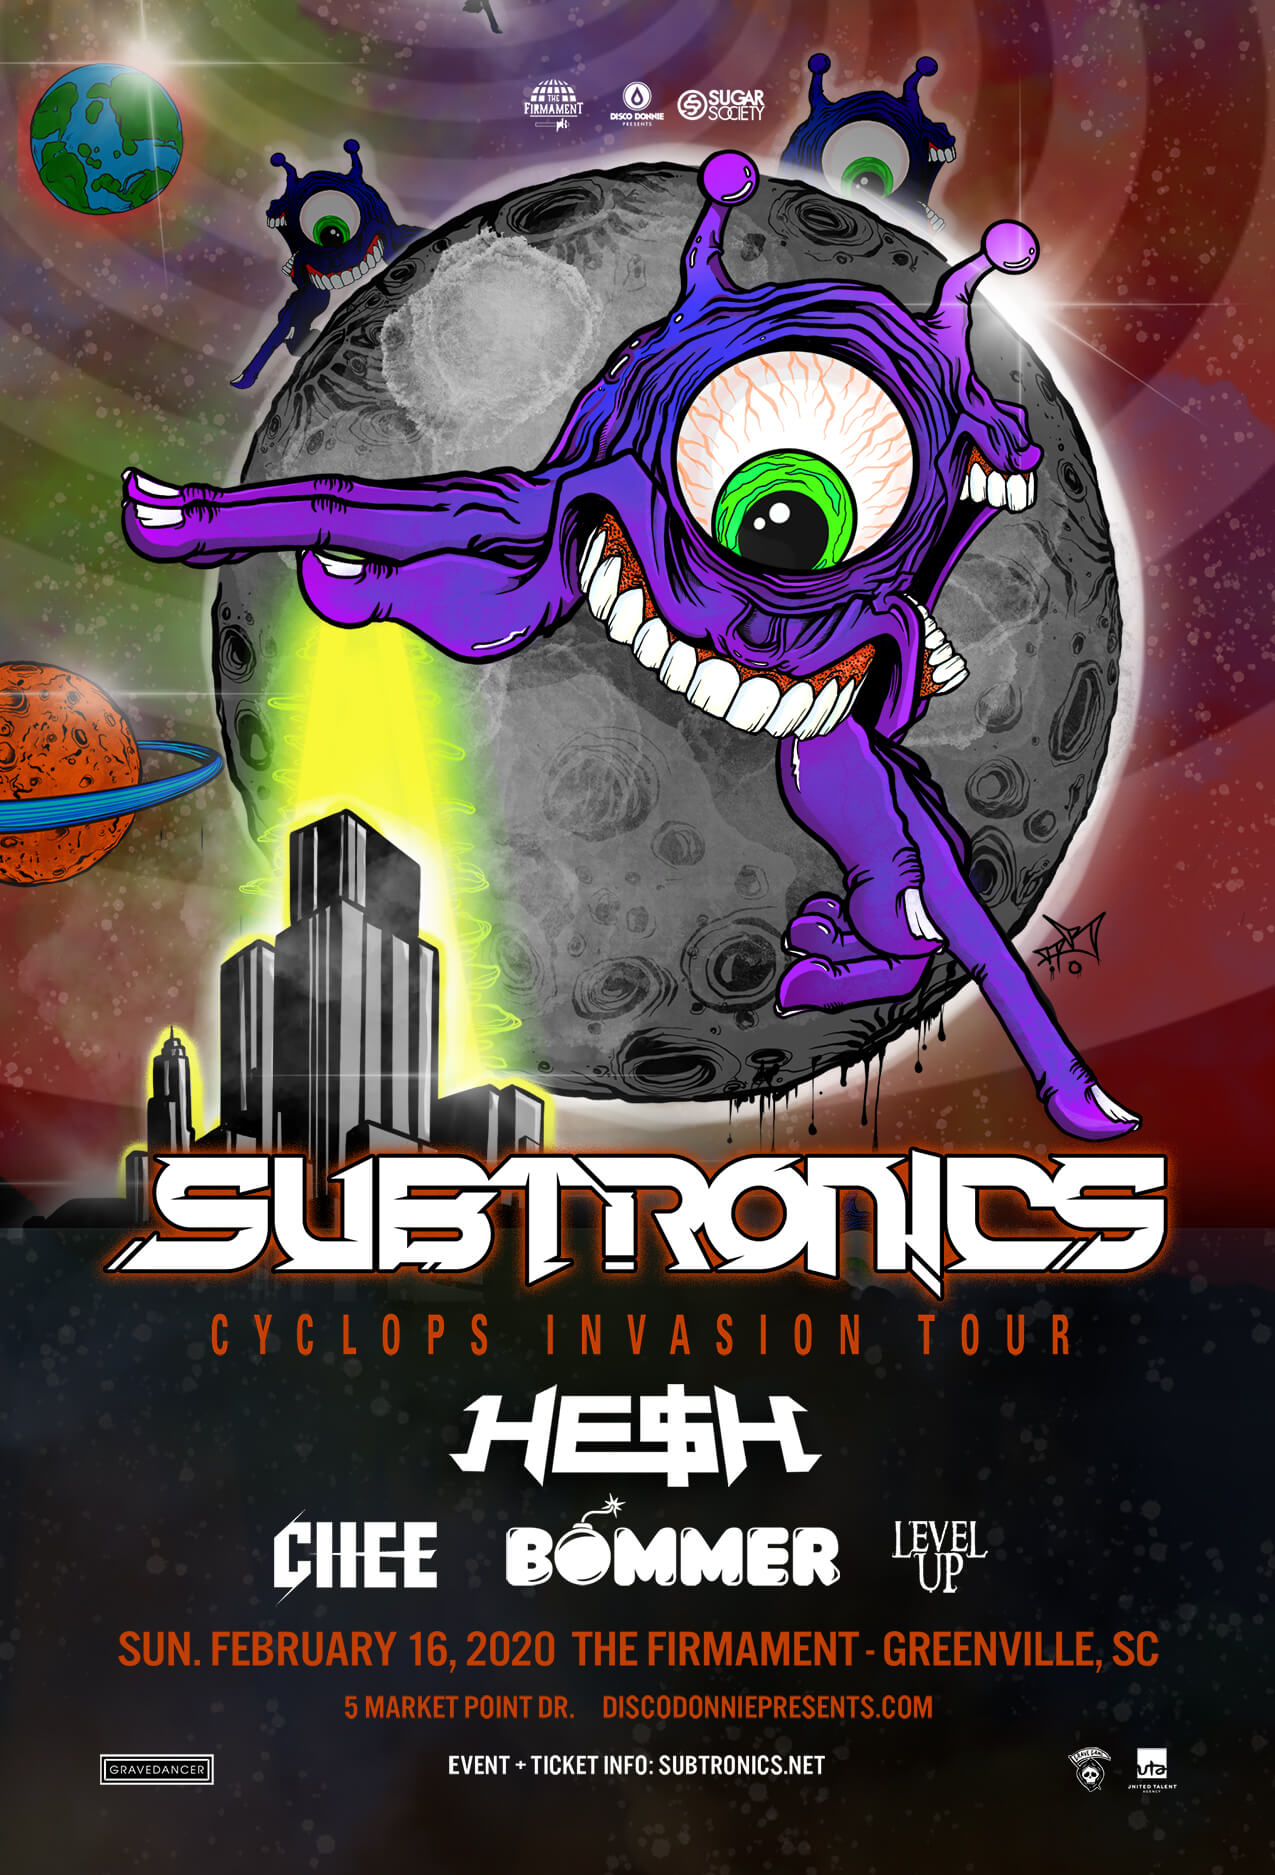 Subtronics, Hesh, Chee, Bommer, Level Up in Greenville